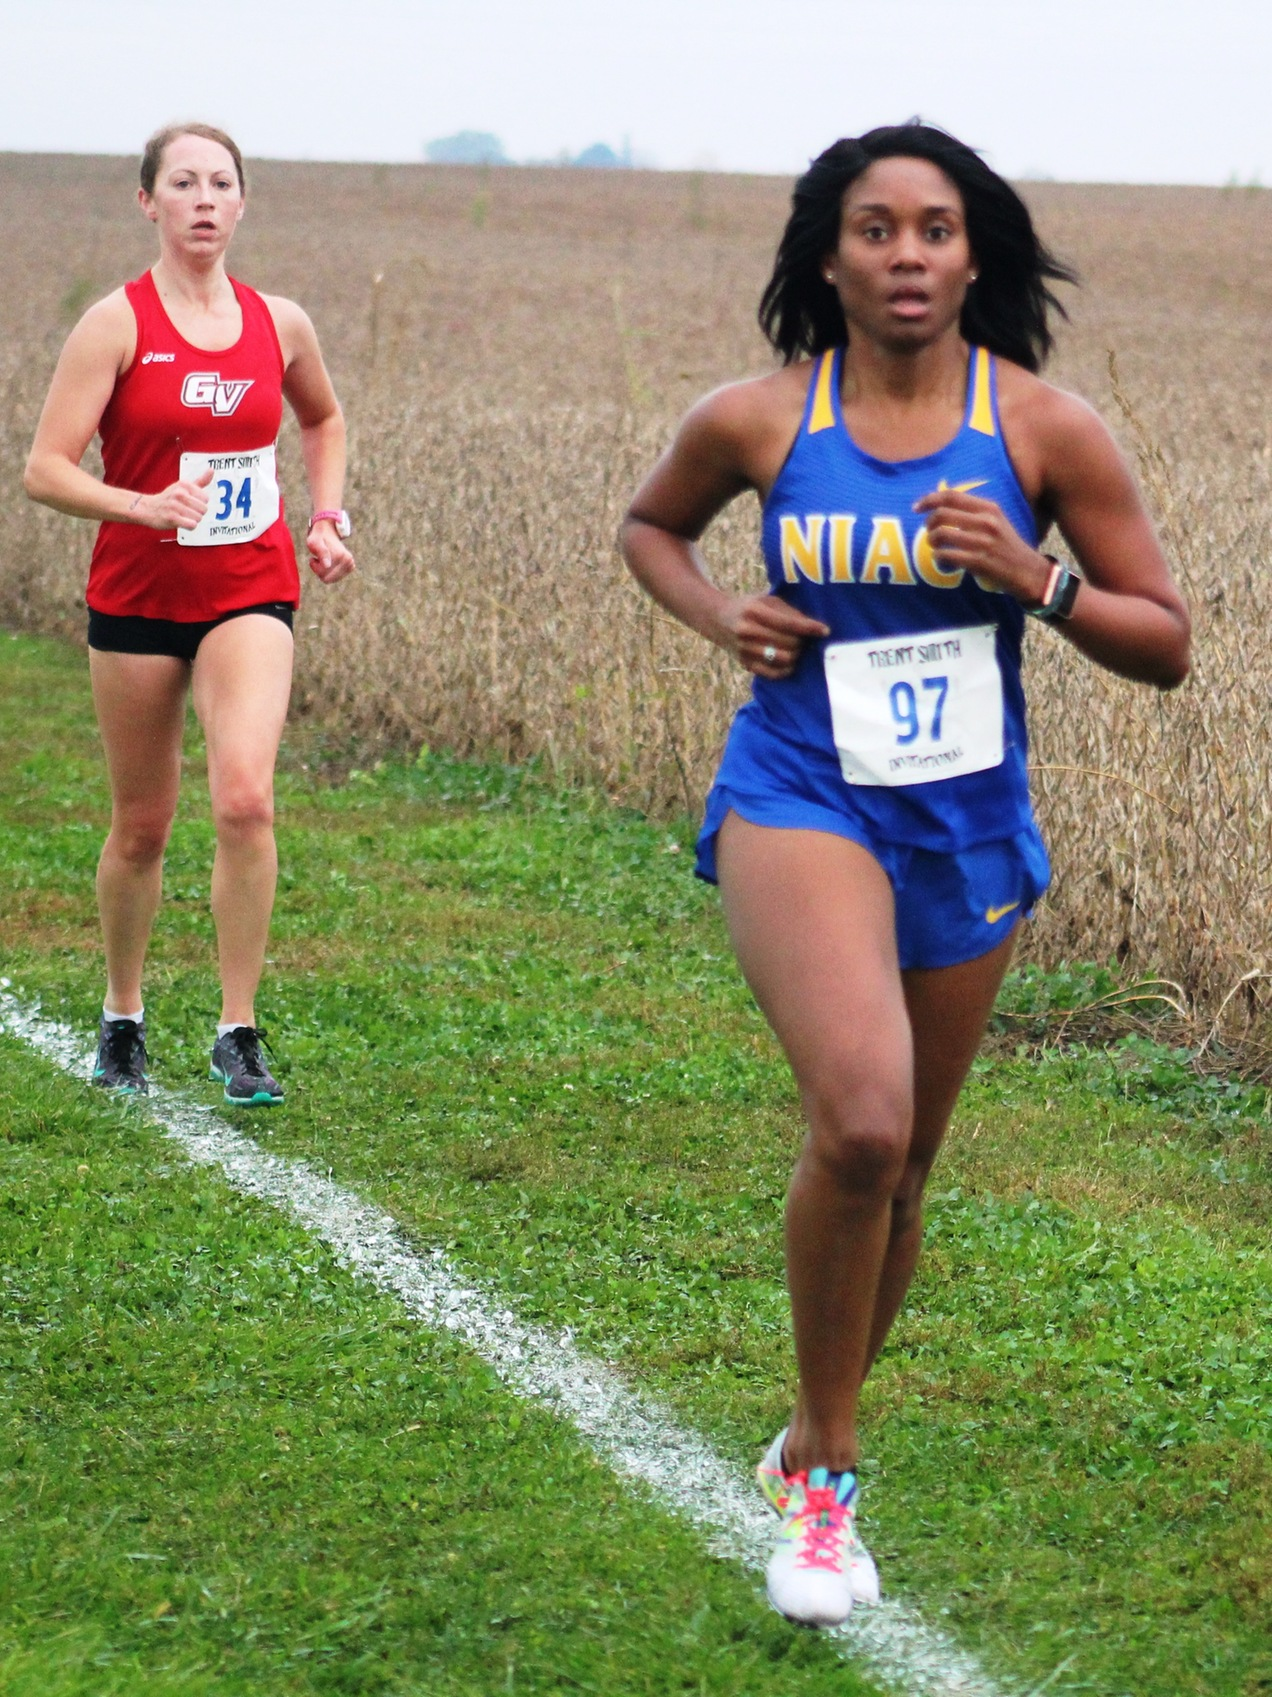 NIACC's Keisha Gonzague runs at the Trent Smith Invitational on Oct. 13. Gonzague was an honorable mention all-region performer in 2016.